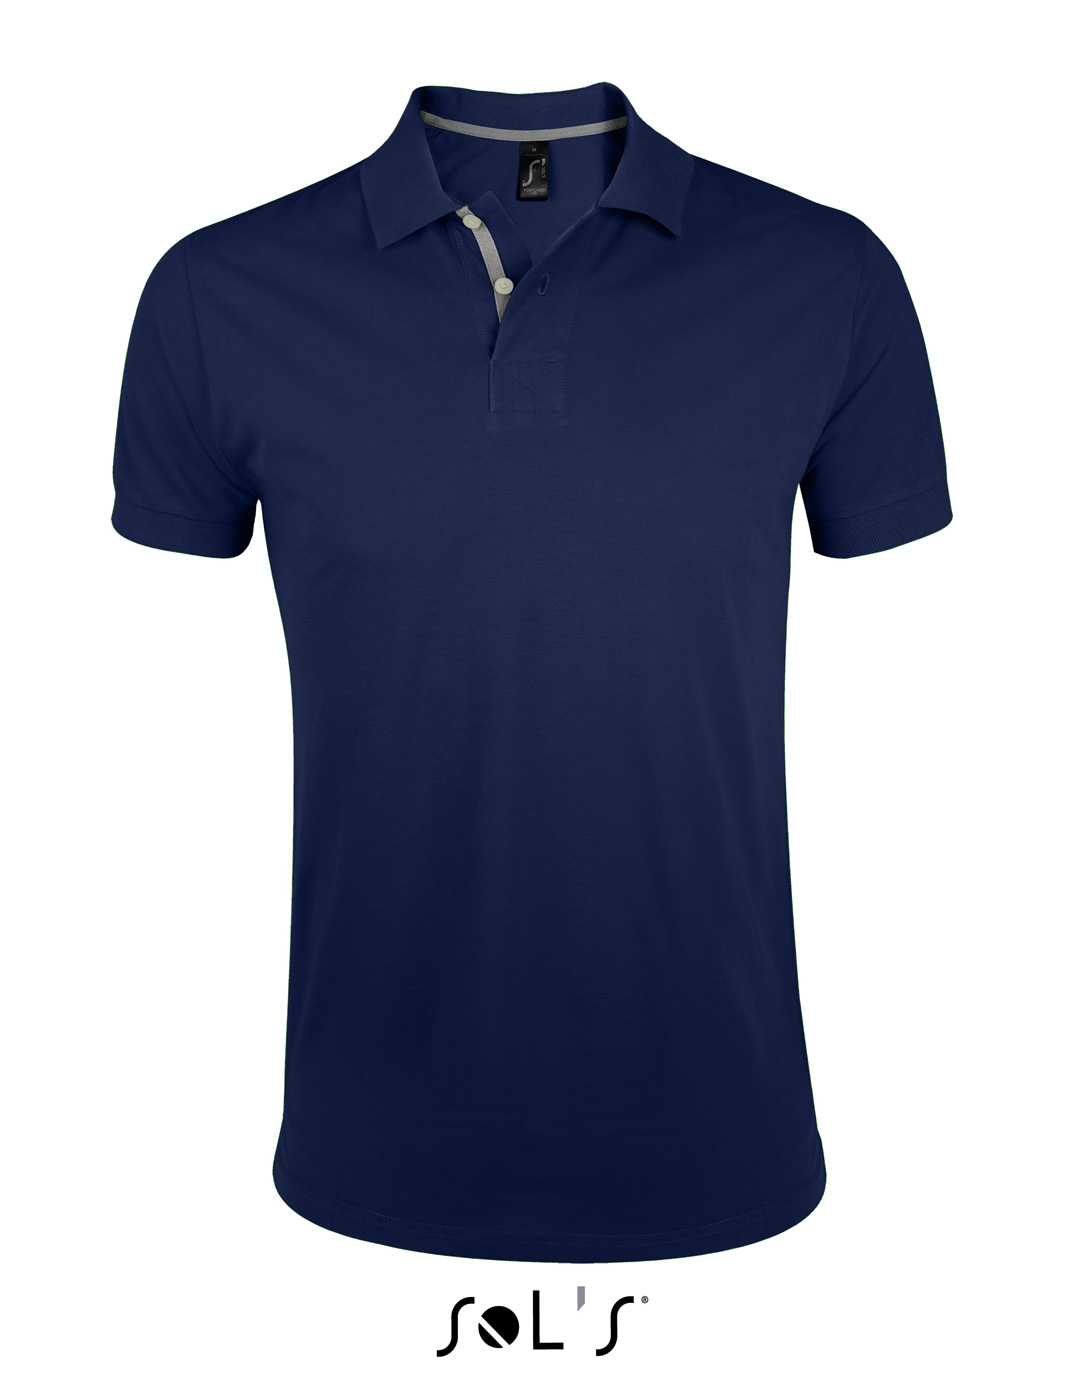 Portlandmen 00574 french navy a